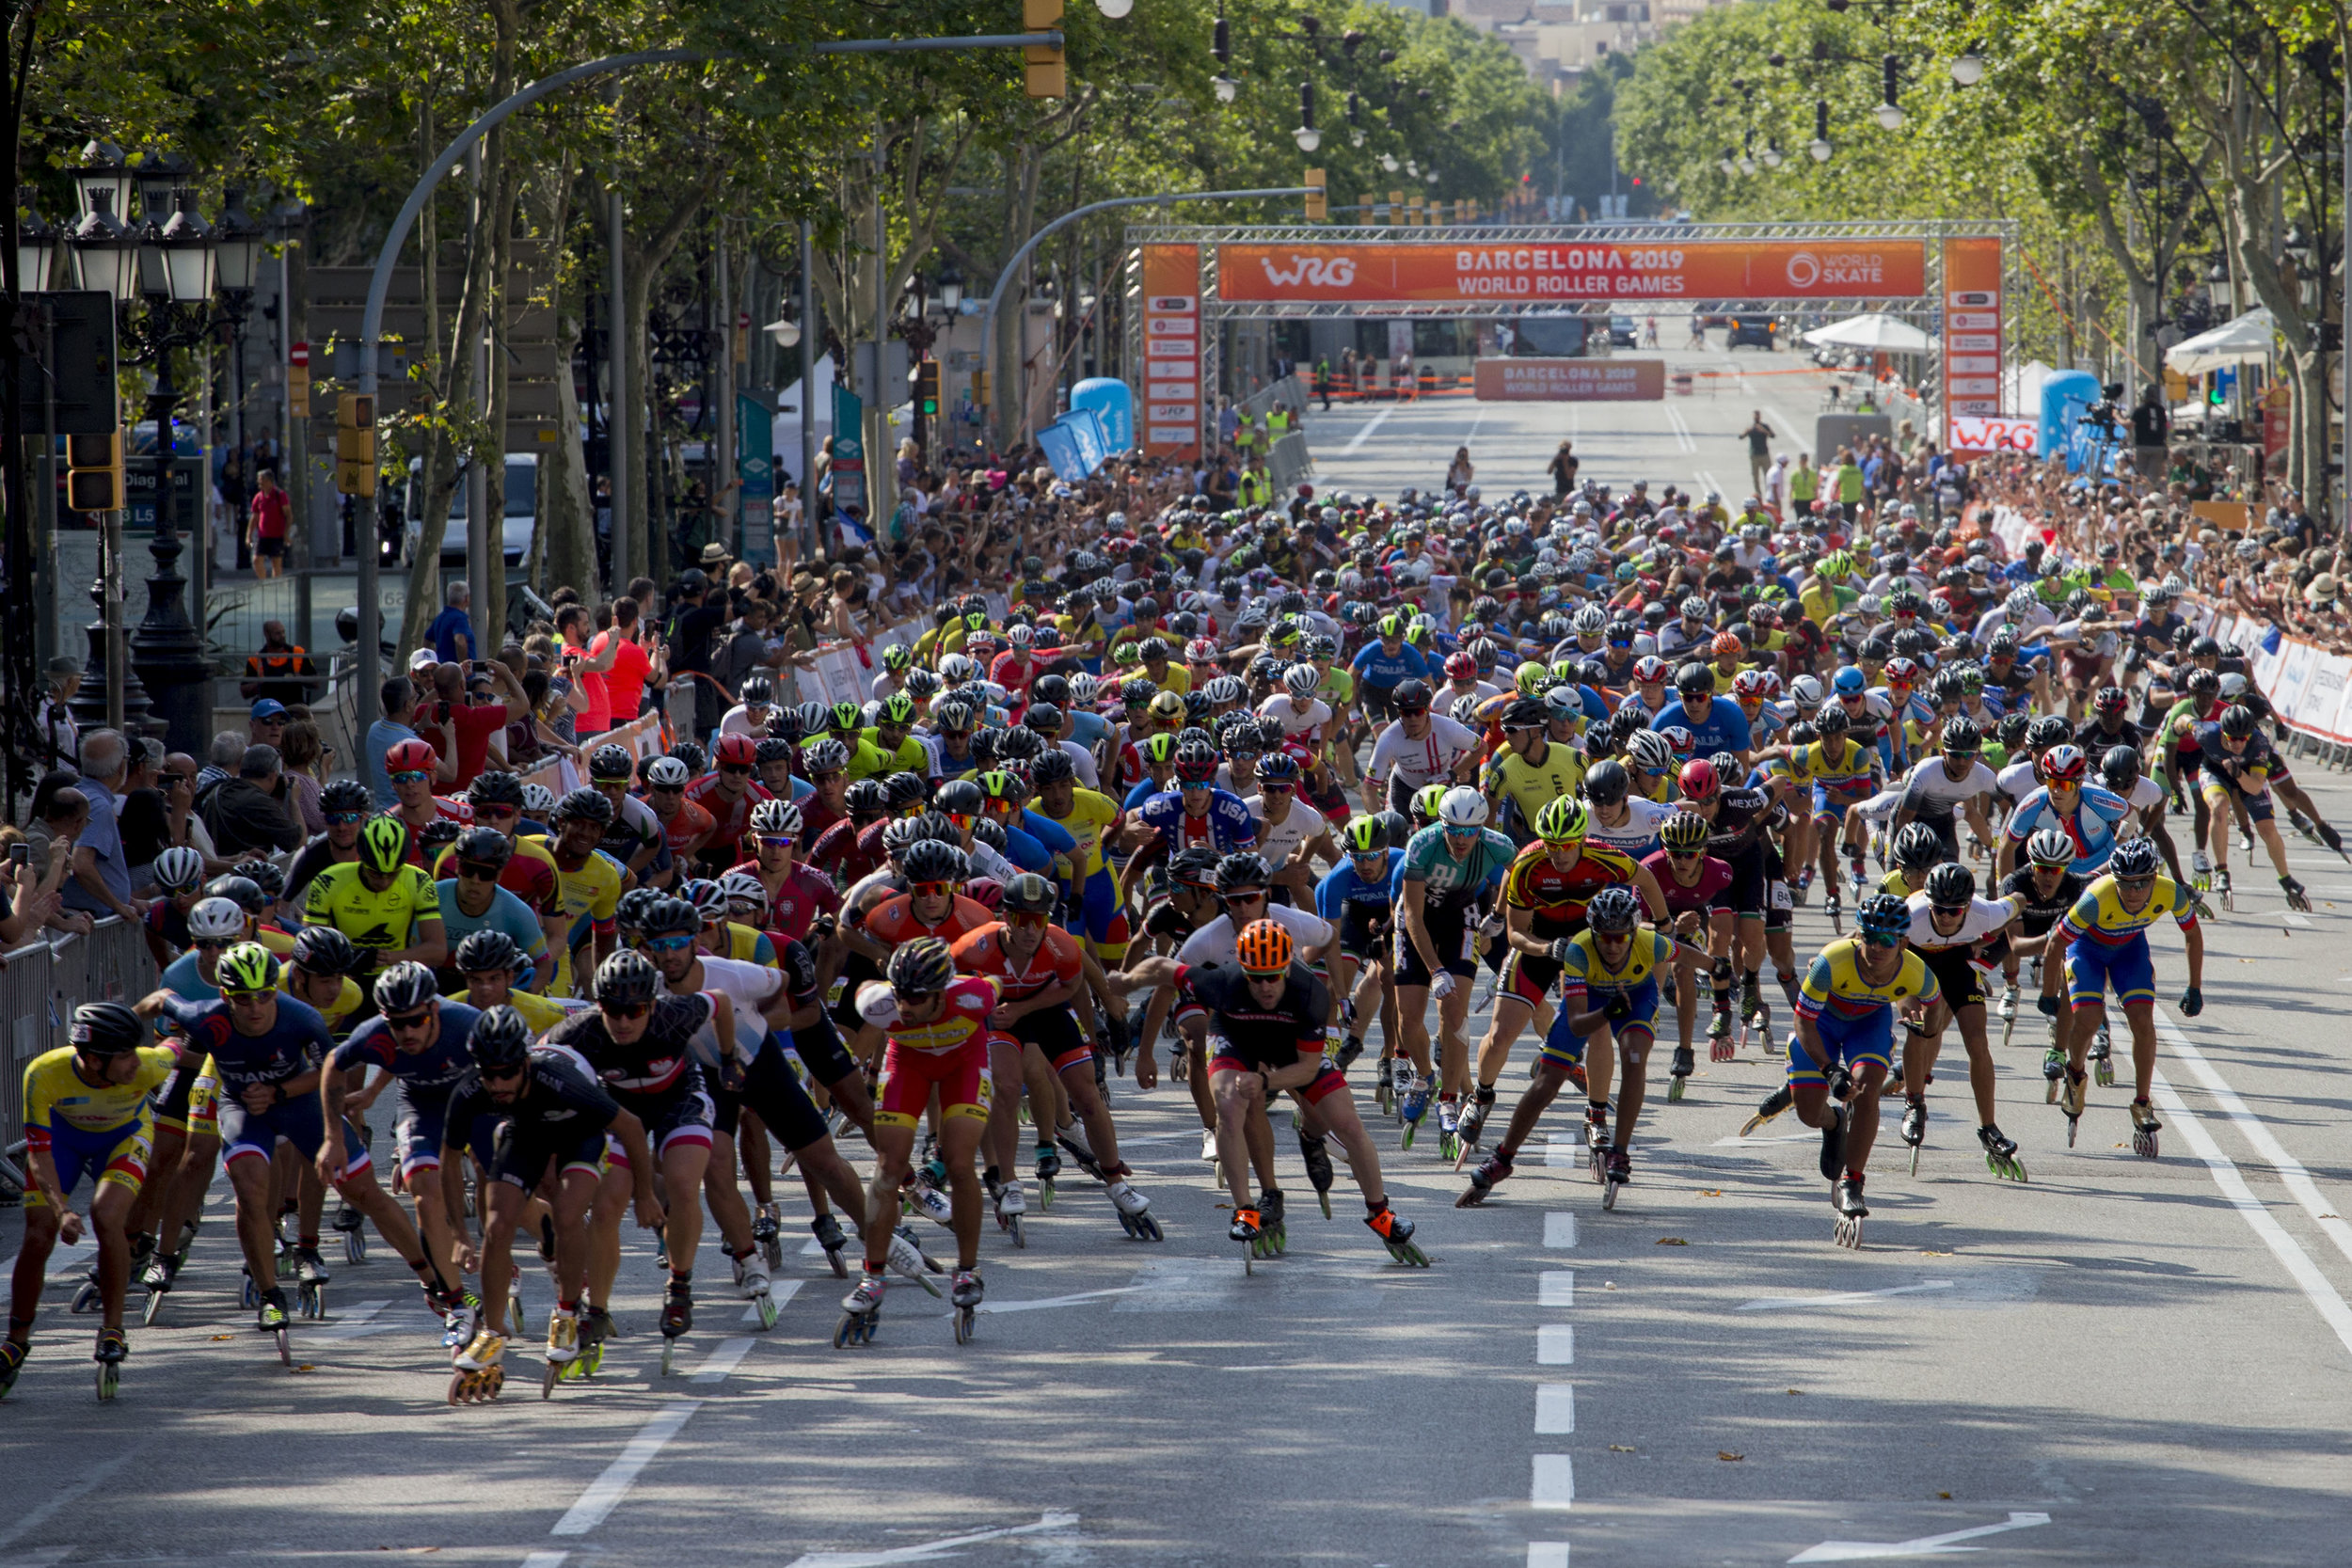 14072019_-_is_maraton_-_men__wom_-_bcn___j_monfort_-_wrg18_20190714_1820911632.jpg